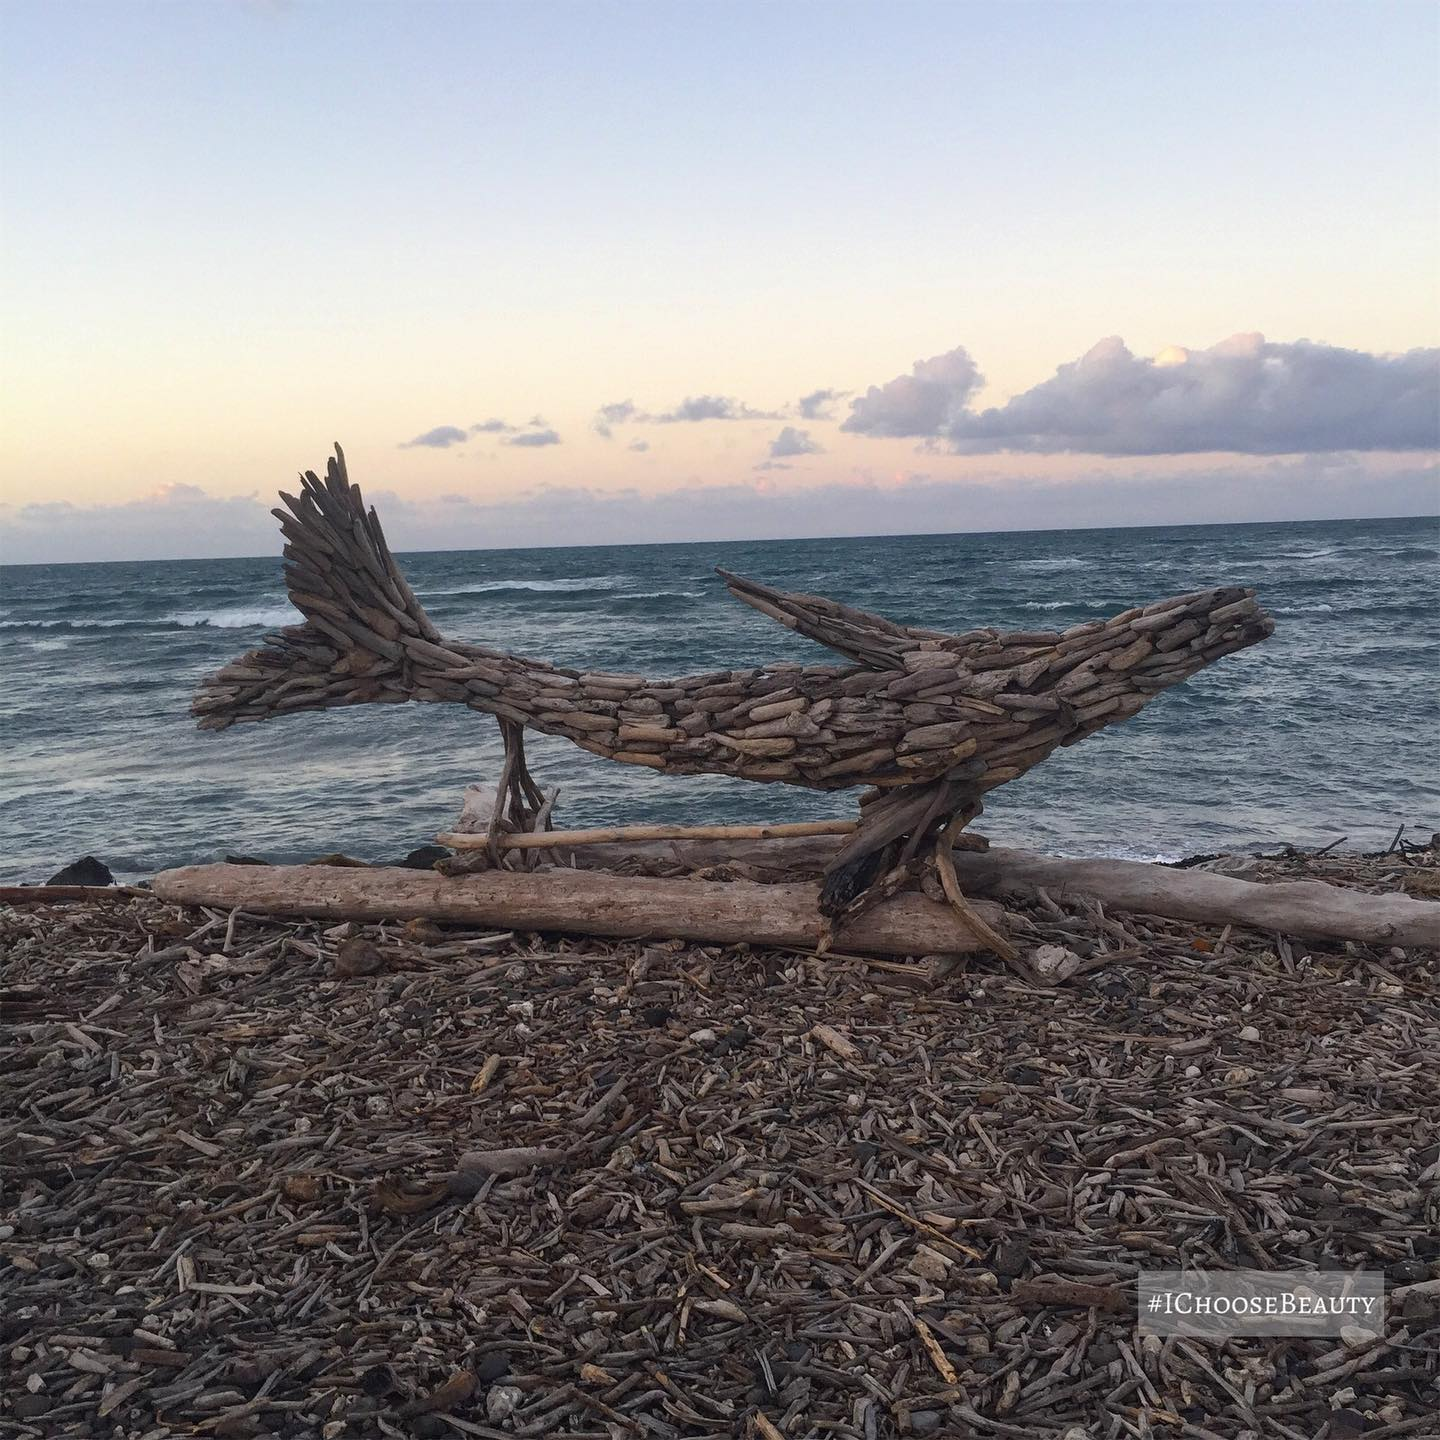 How amazing is this driftwood art?! Swipe to see the turtle. 😀😀 #ichoosebeauty Day 2735